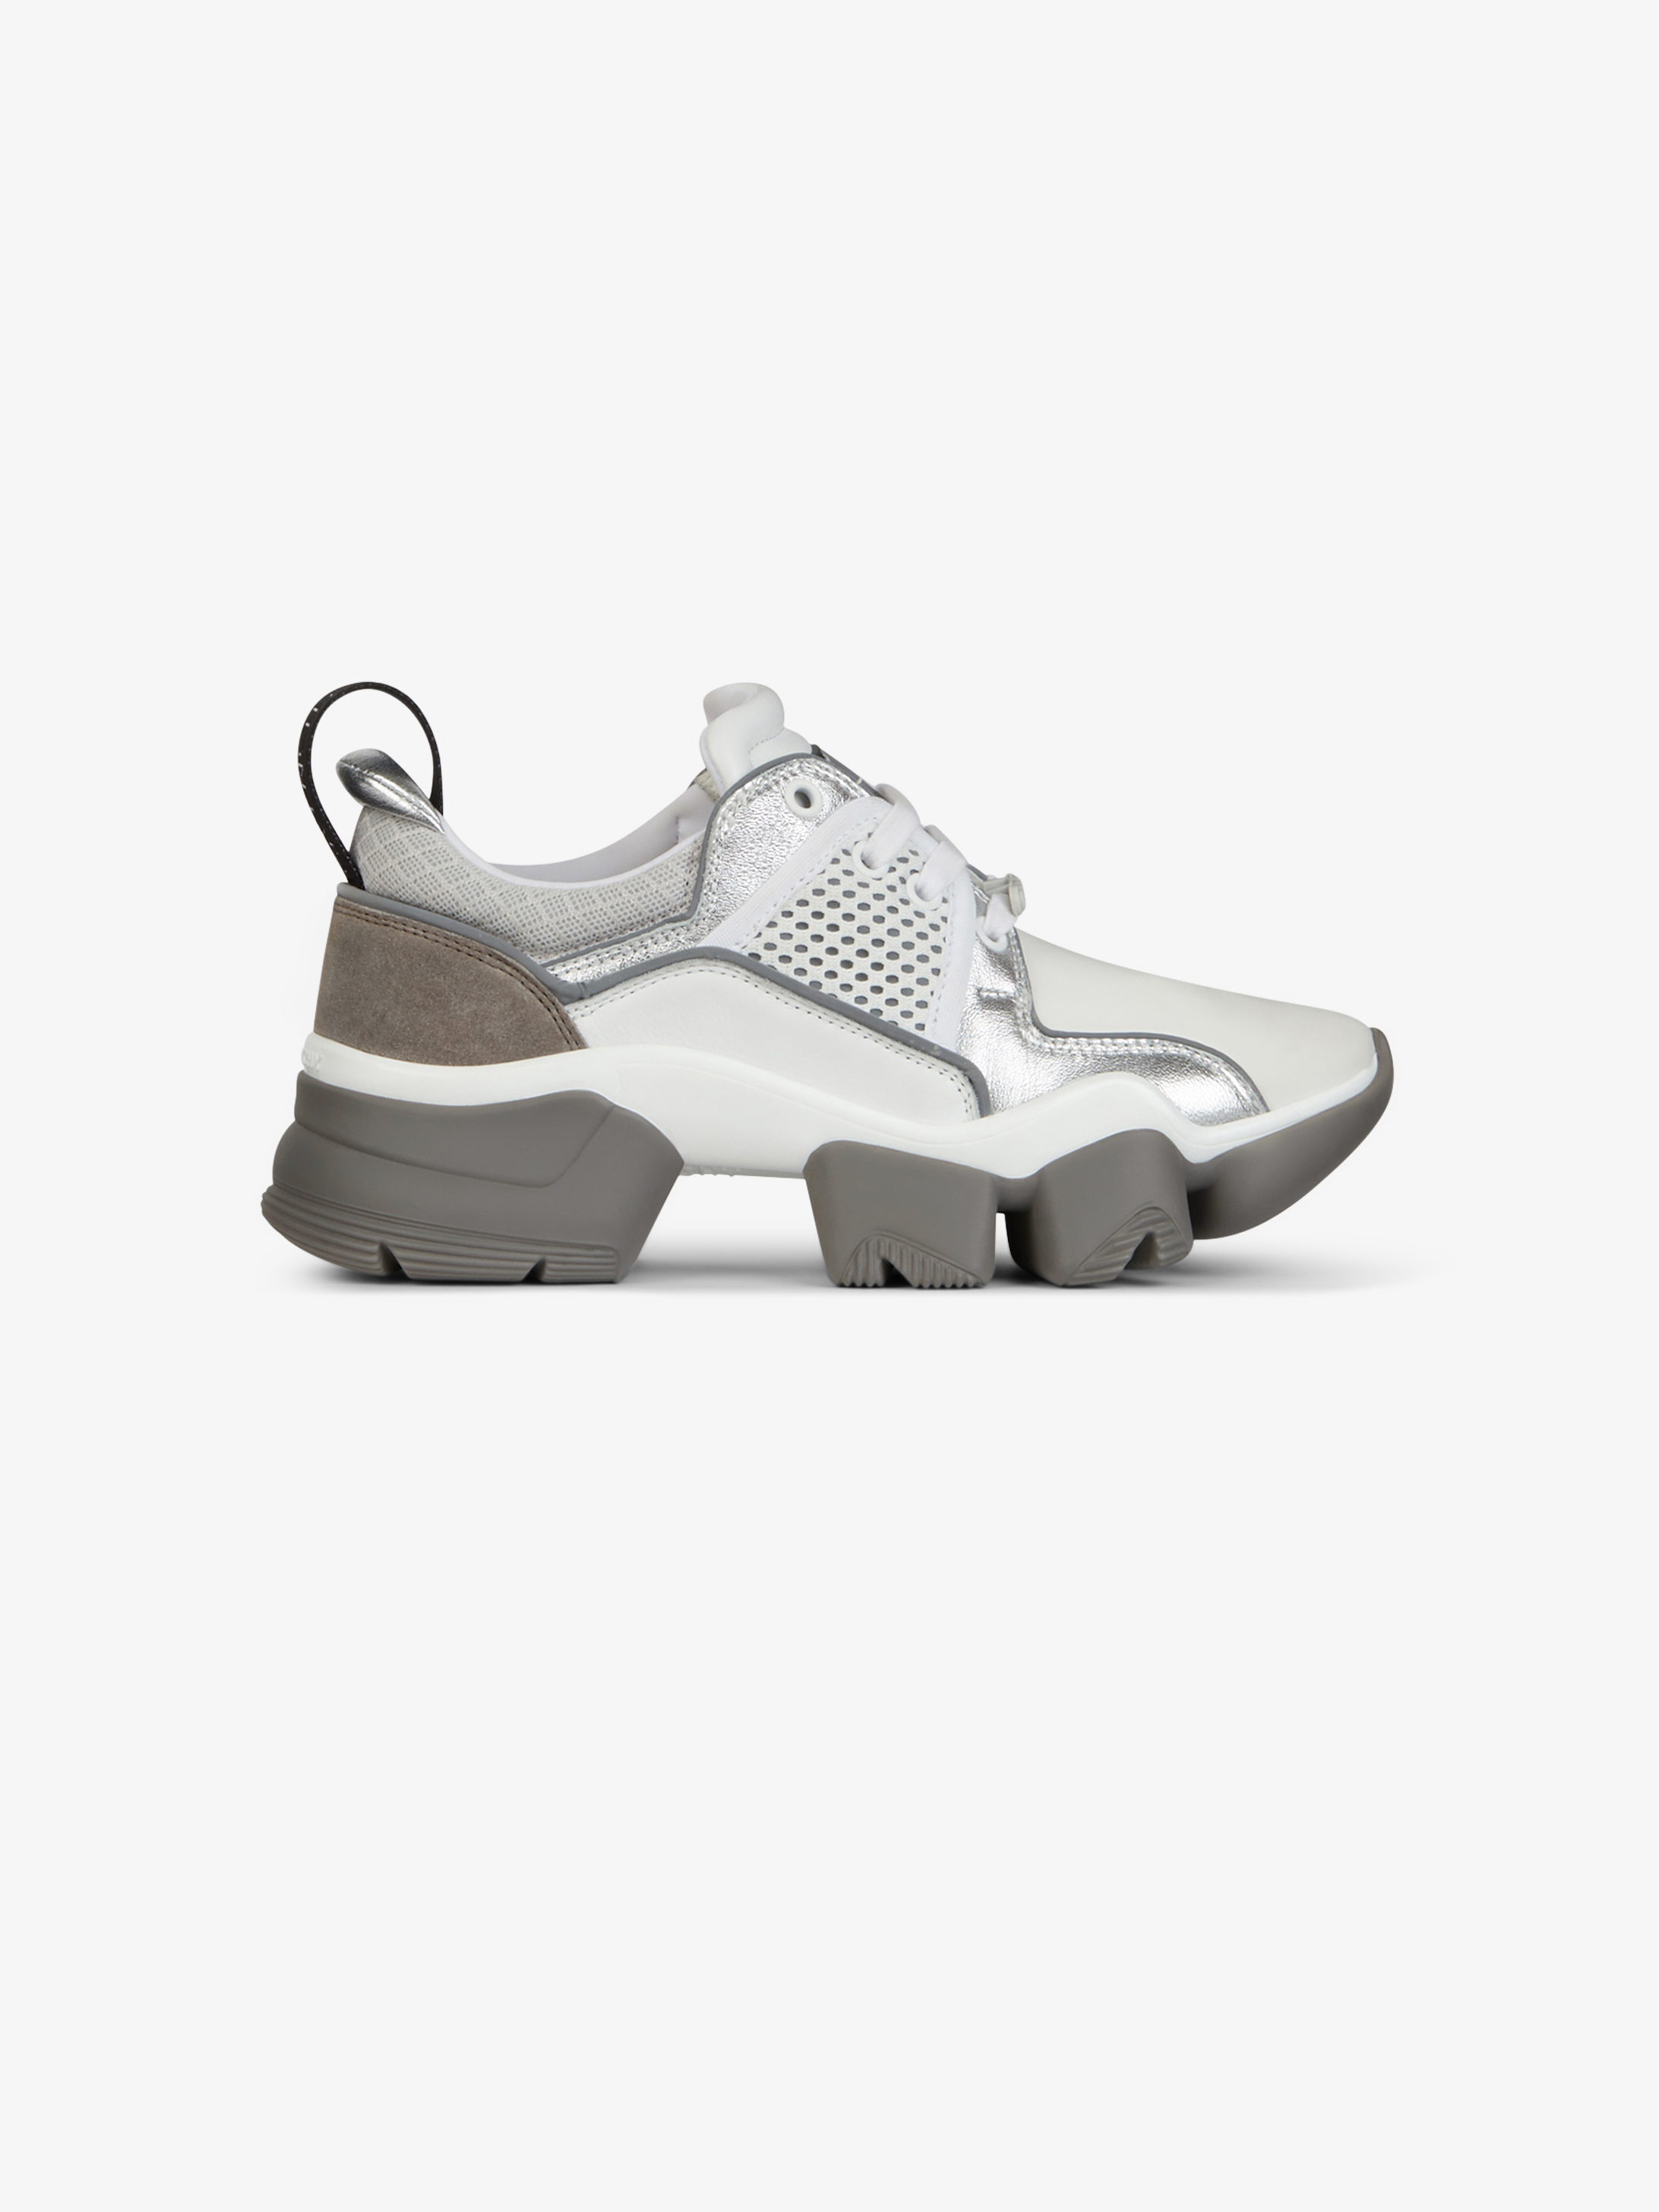 Metallized low JAW sneakers in neoprene and leather